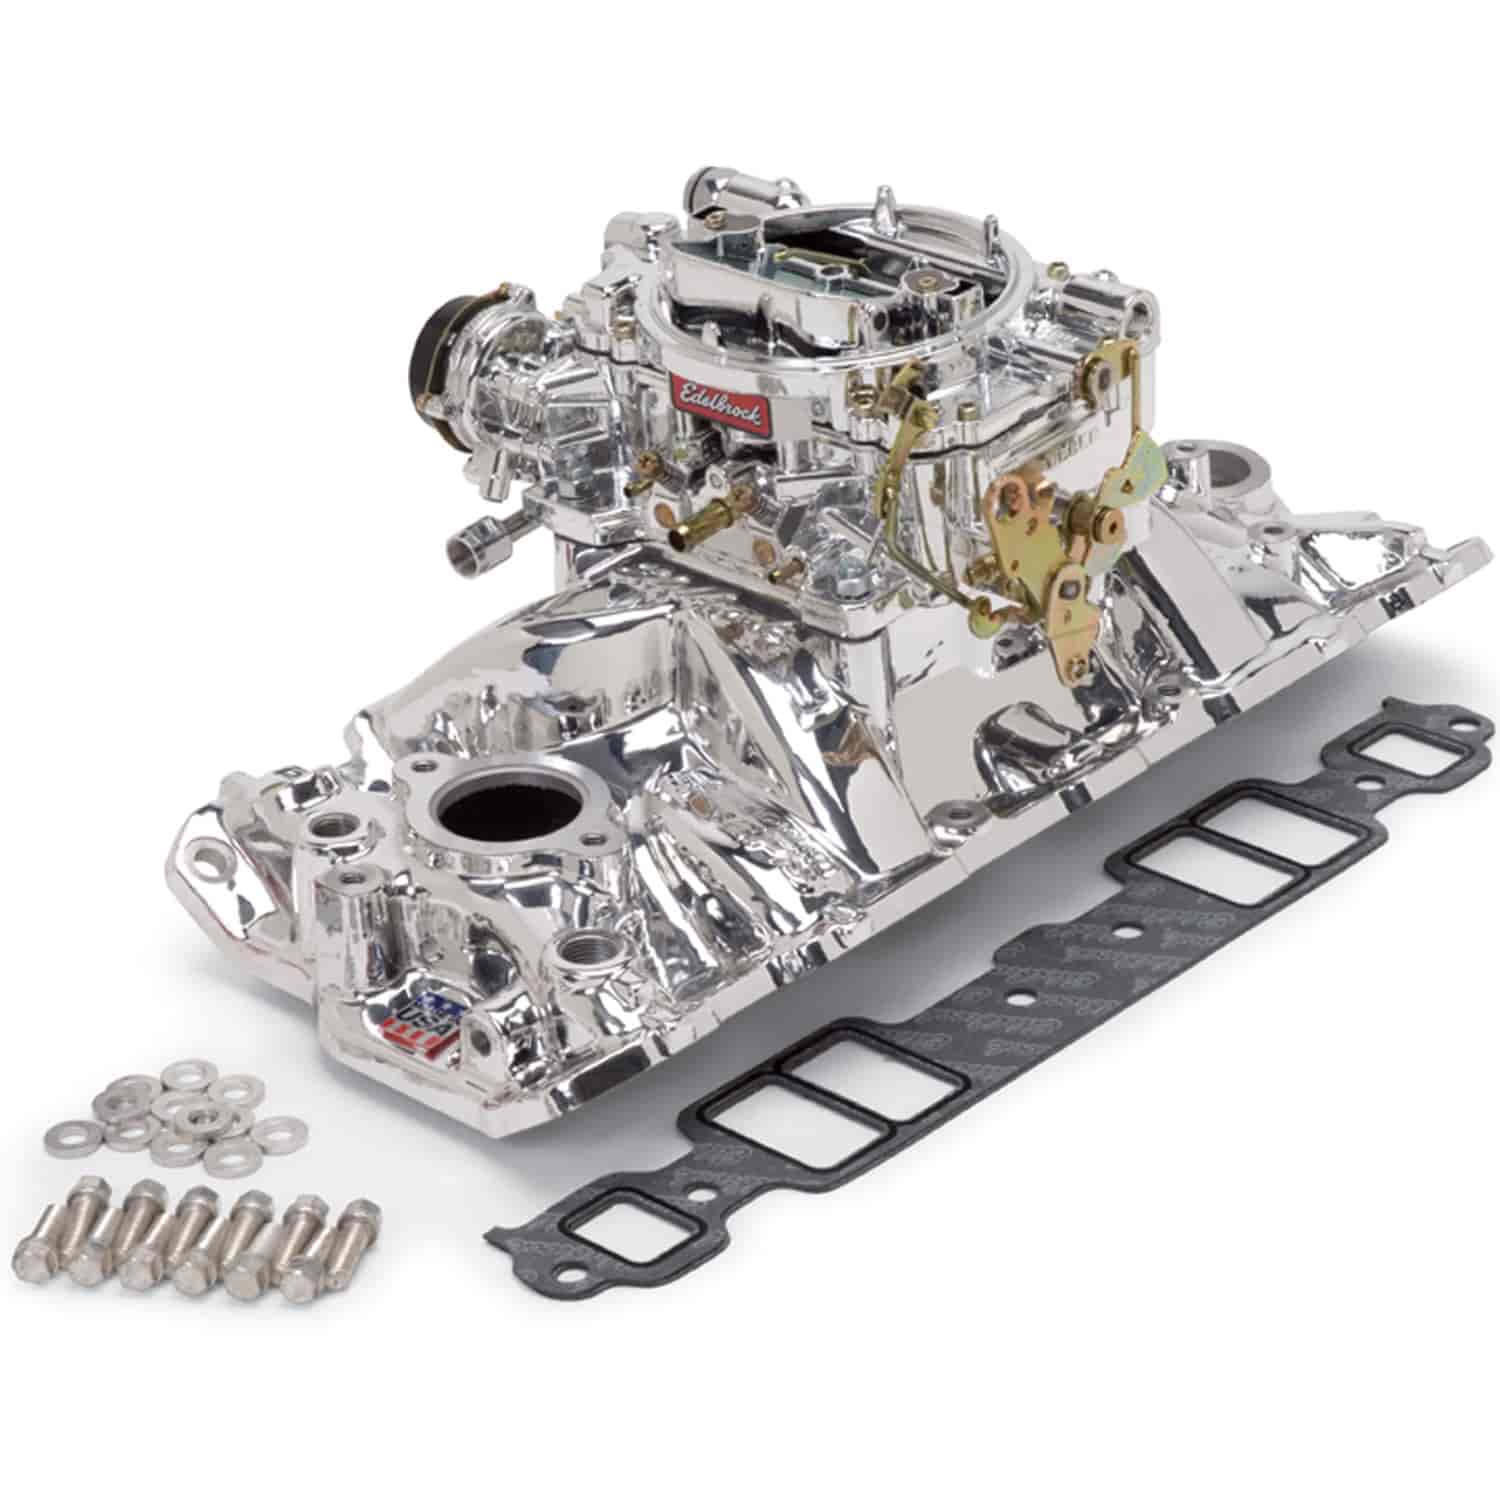 Edelbrock 20214 - Edelbrock Single-Quad Intake Manifold and Carb Kits